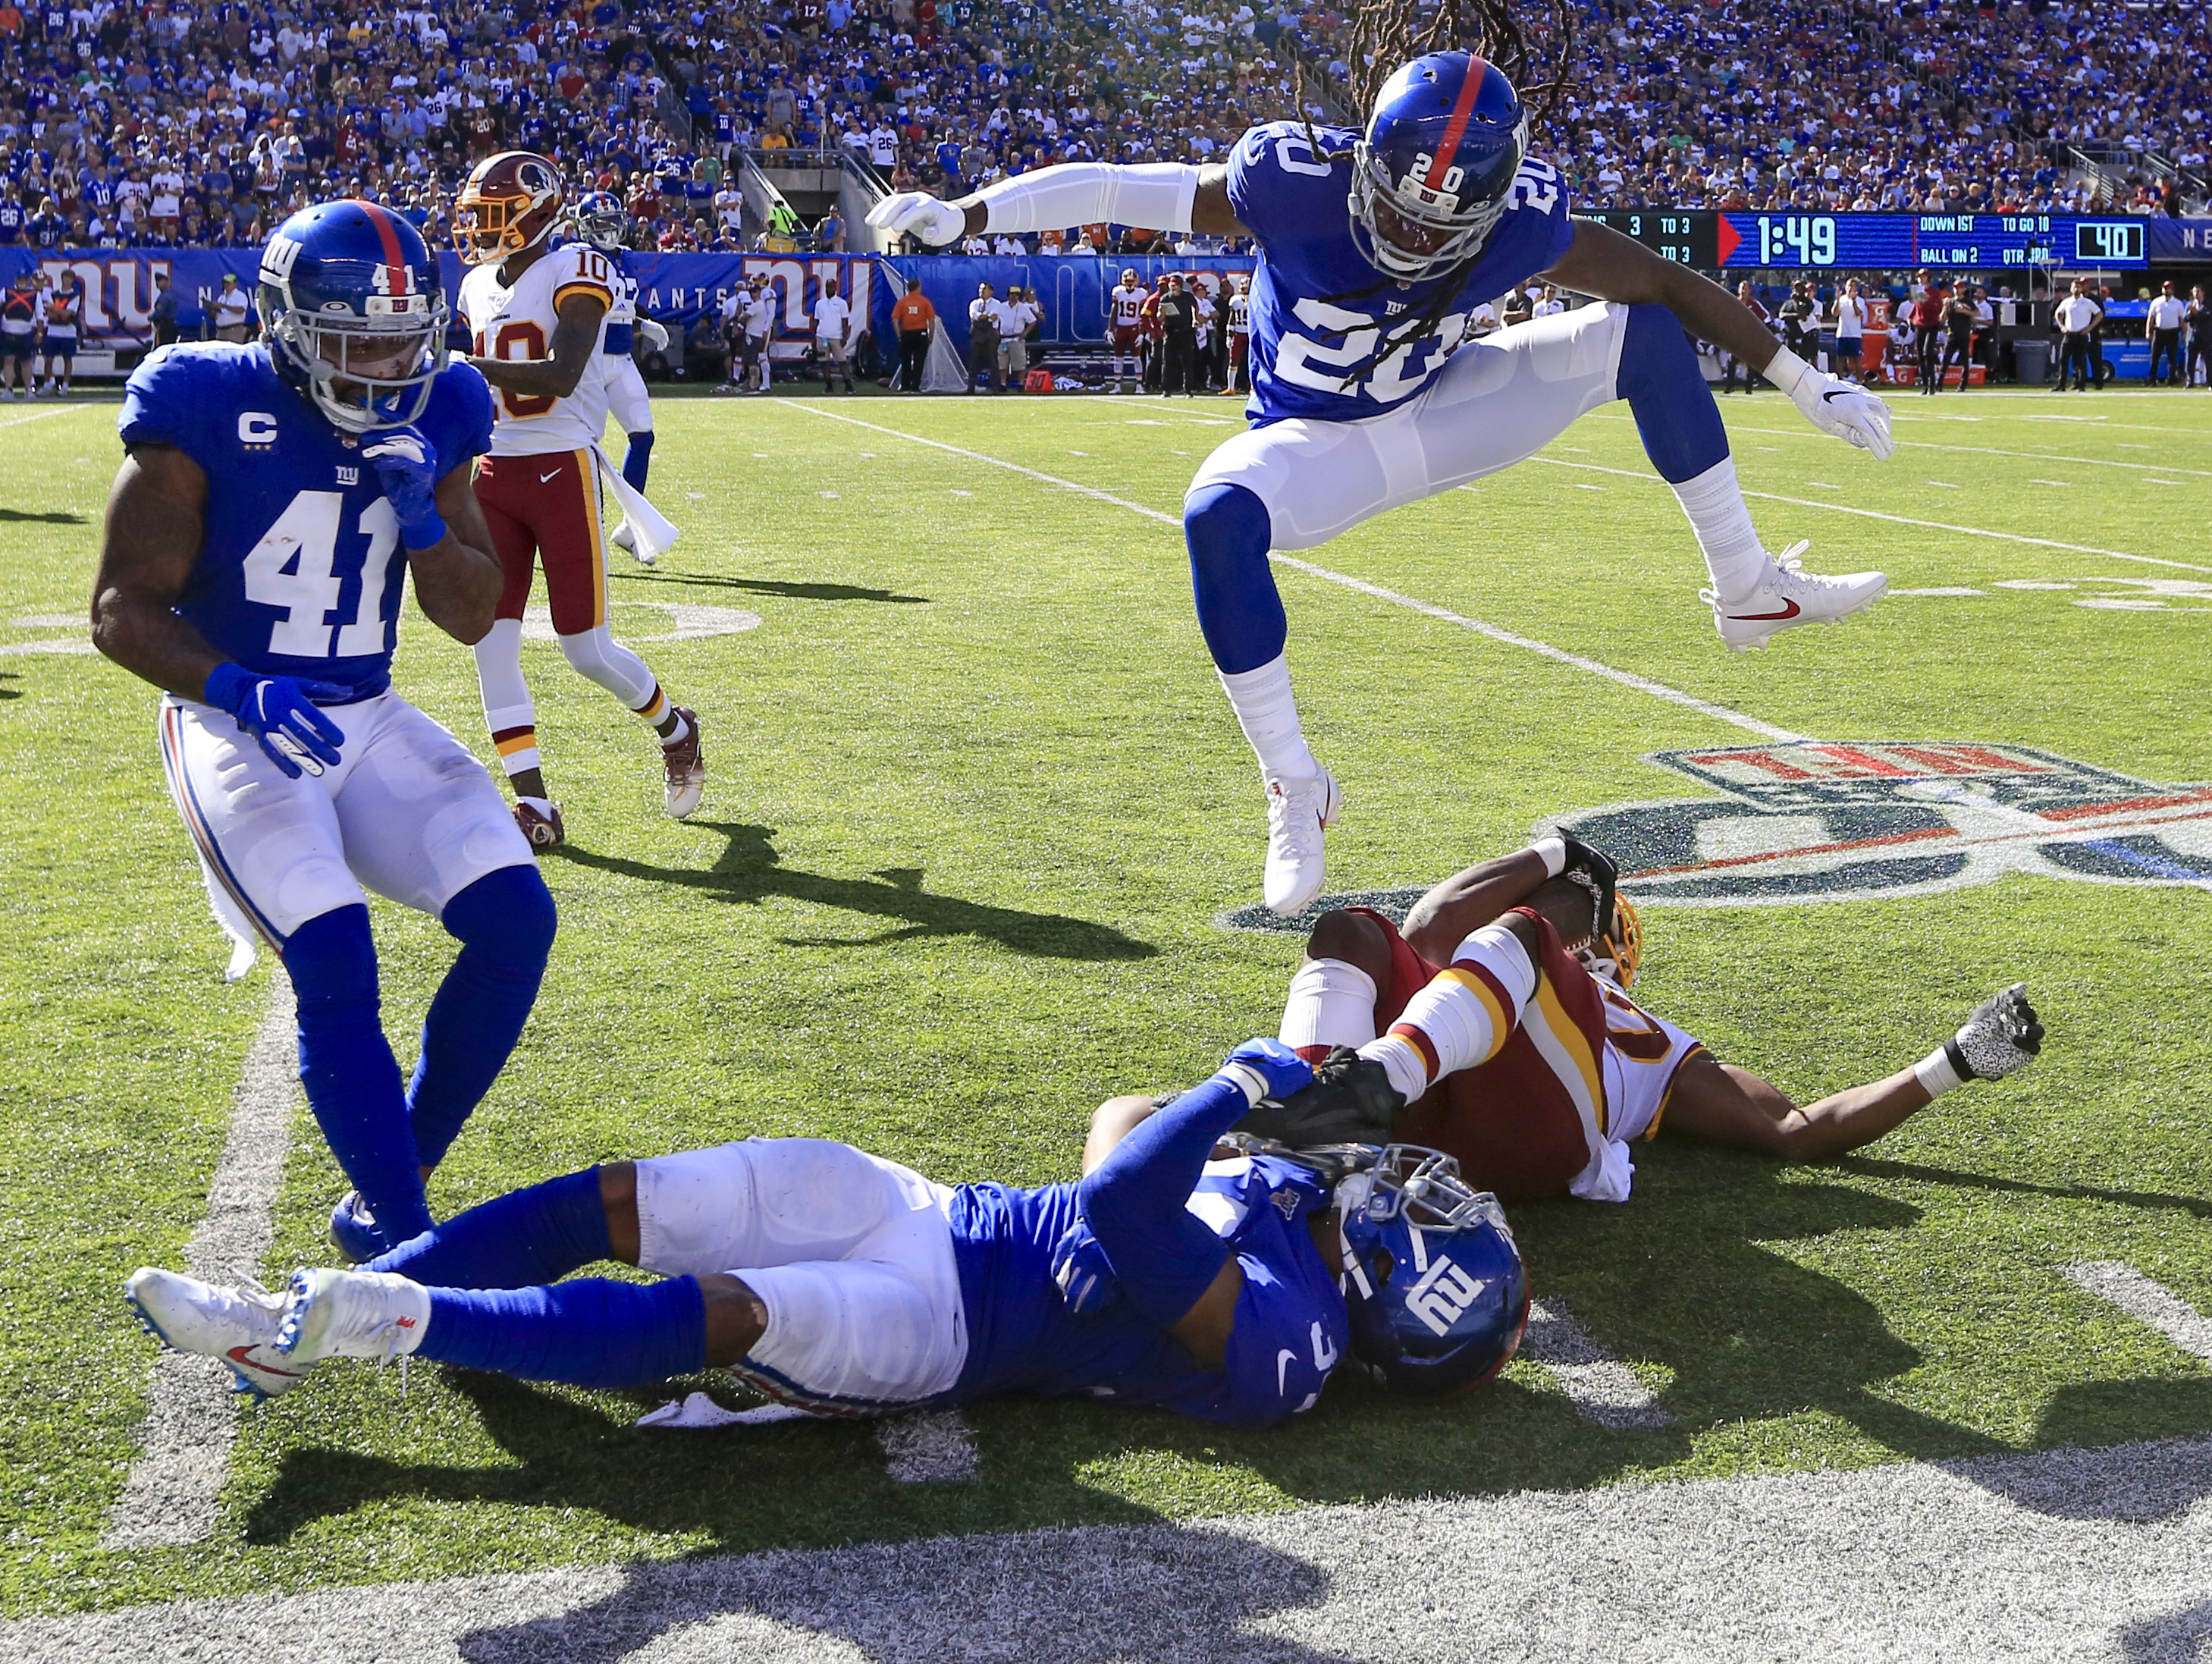 NFL rumors: If the Giants are sellers at trade deadline, here are 3 deals that make sense | Janoris Jenkins to Chiefs?